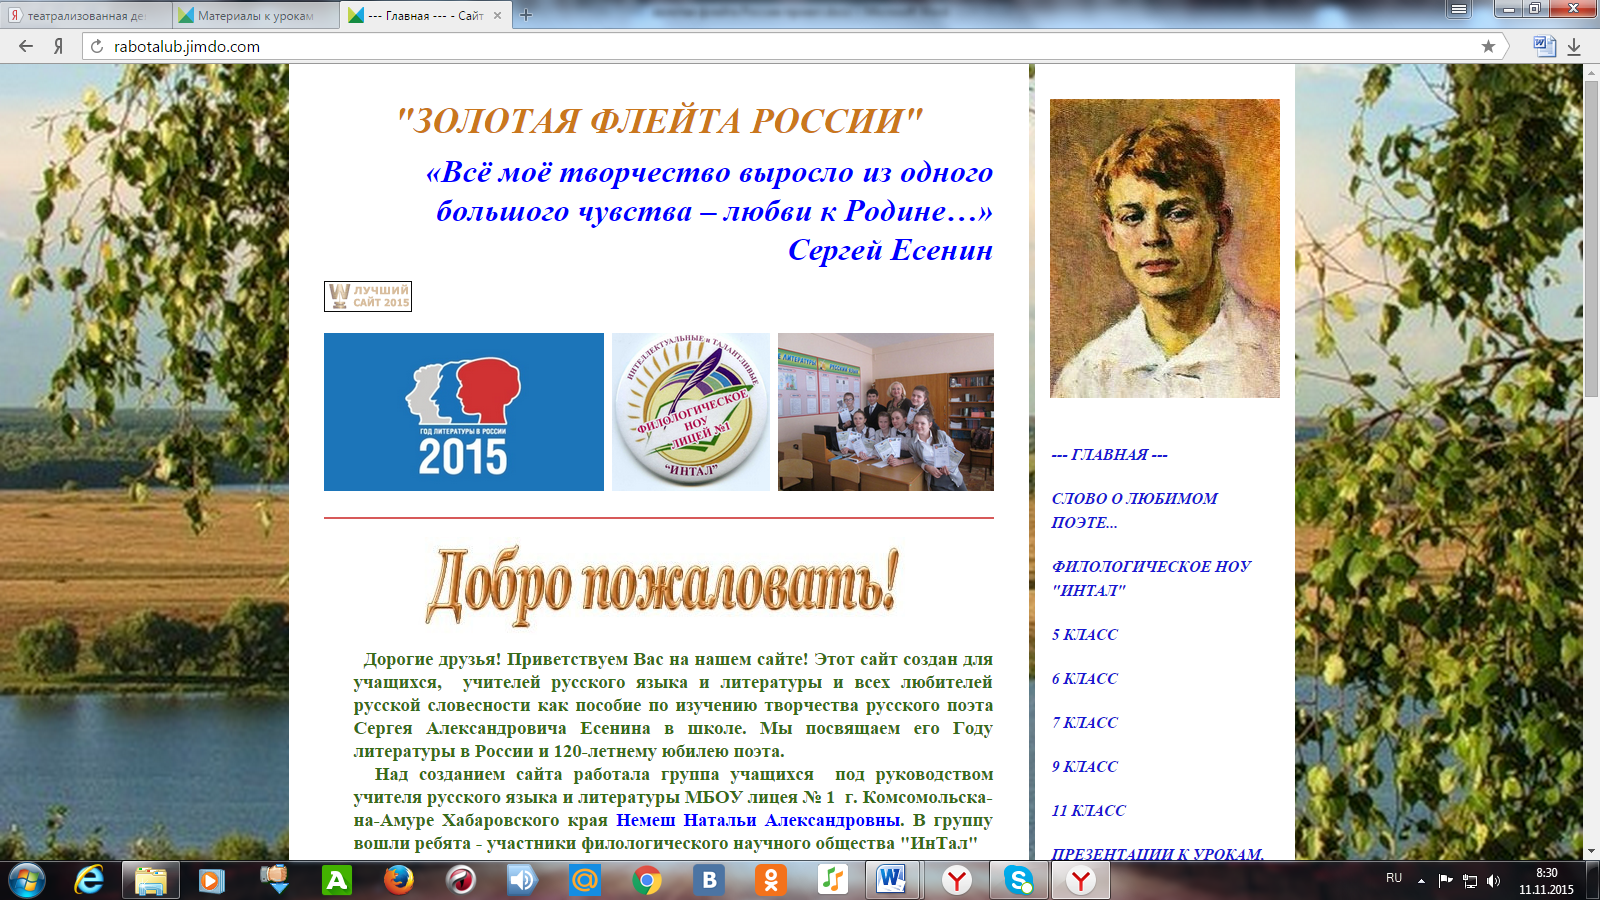 C:\Users\NATALIA\Pictures\скрин сайт.png